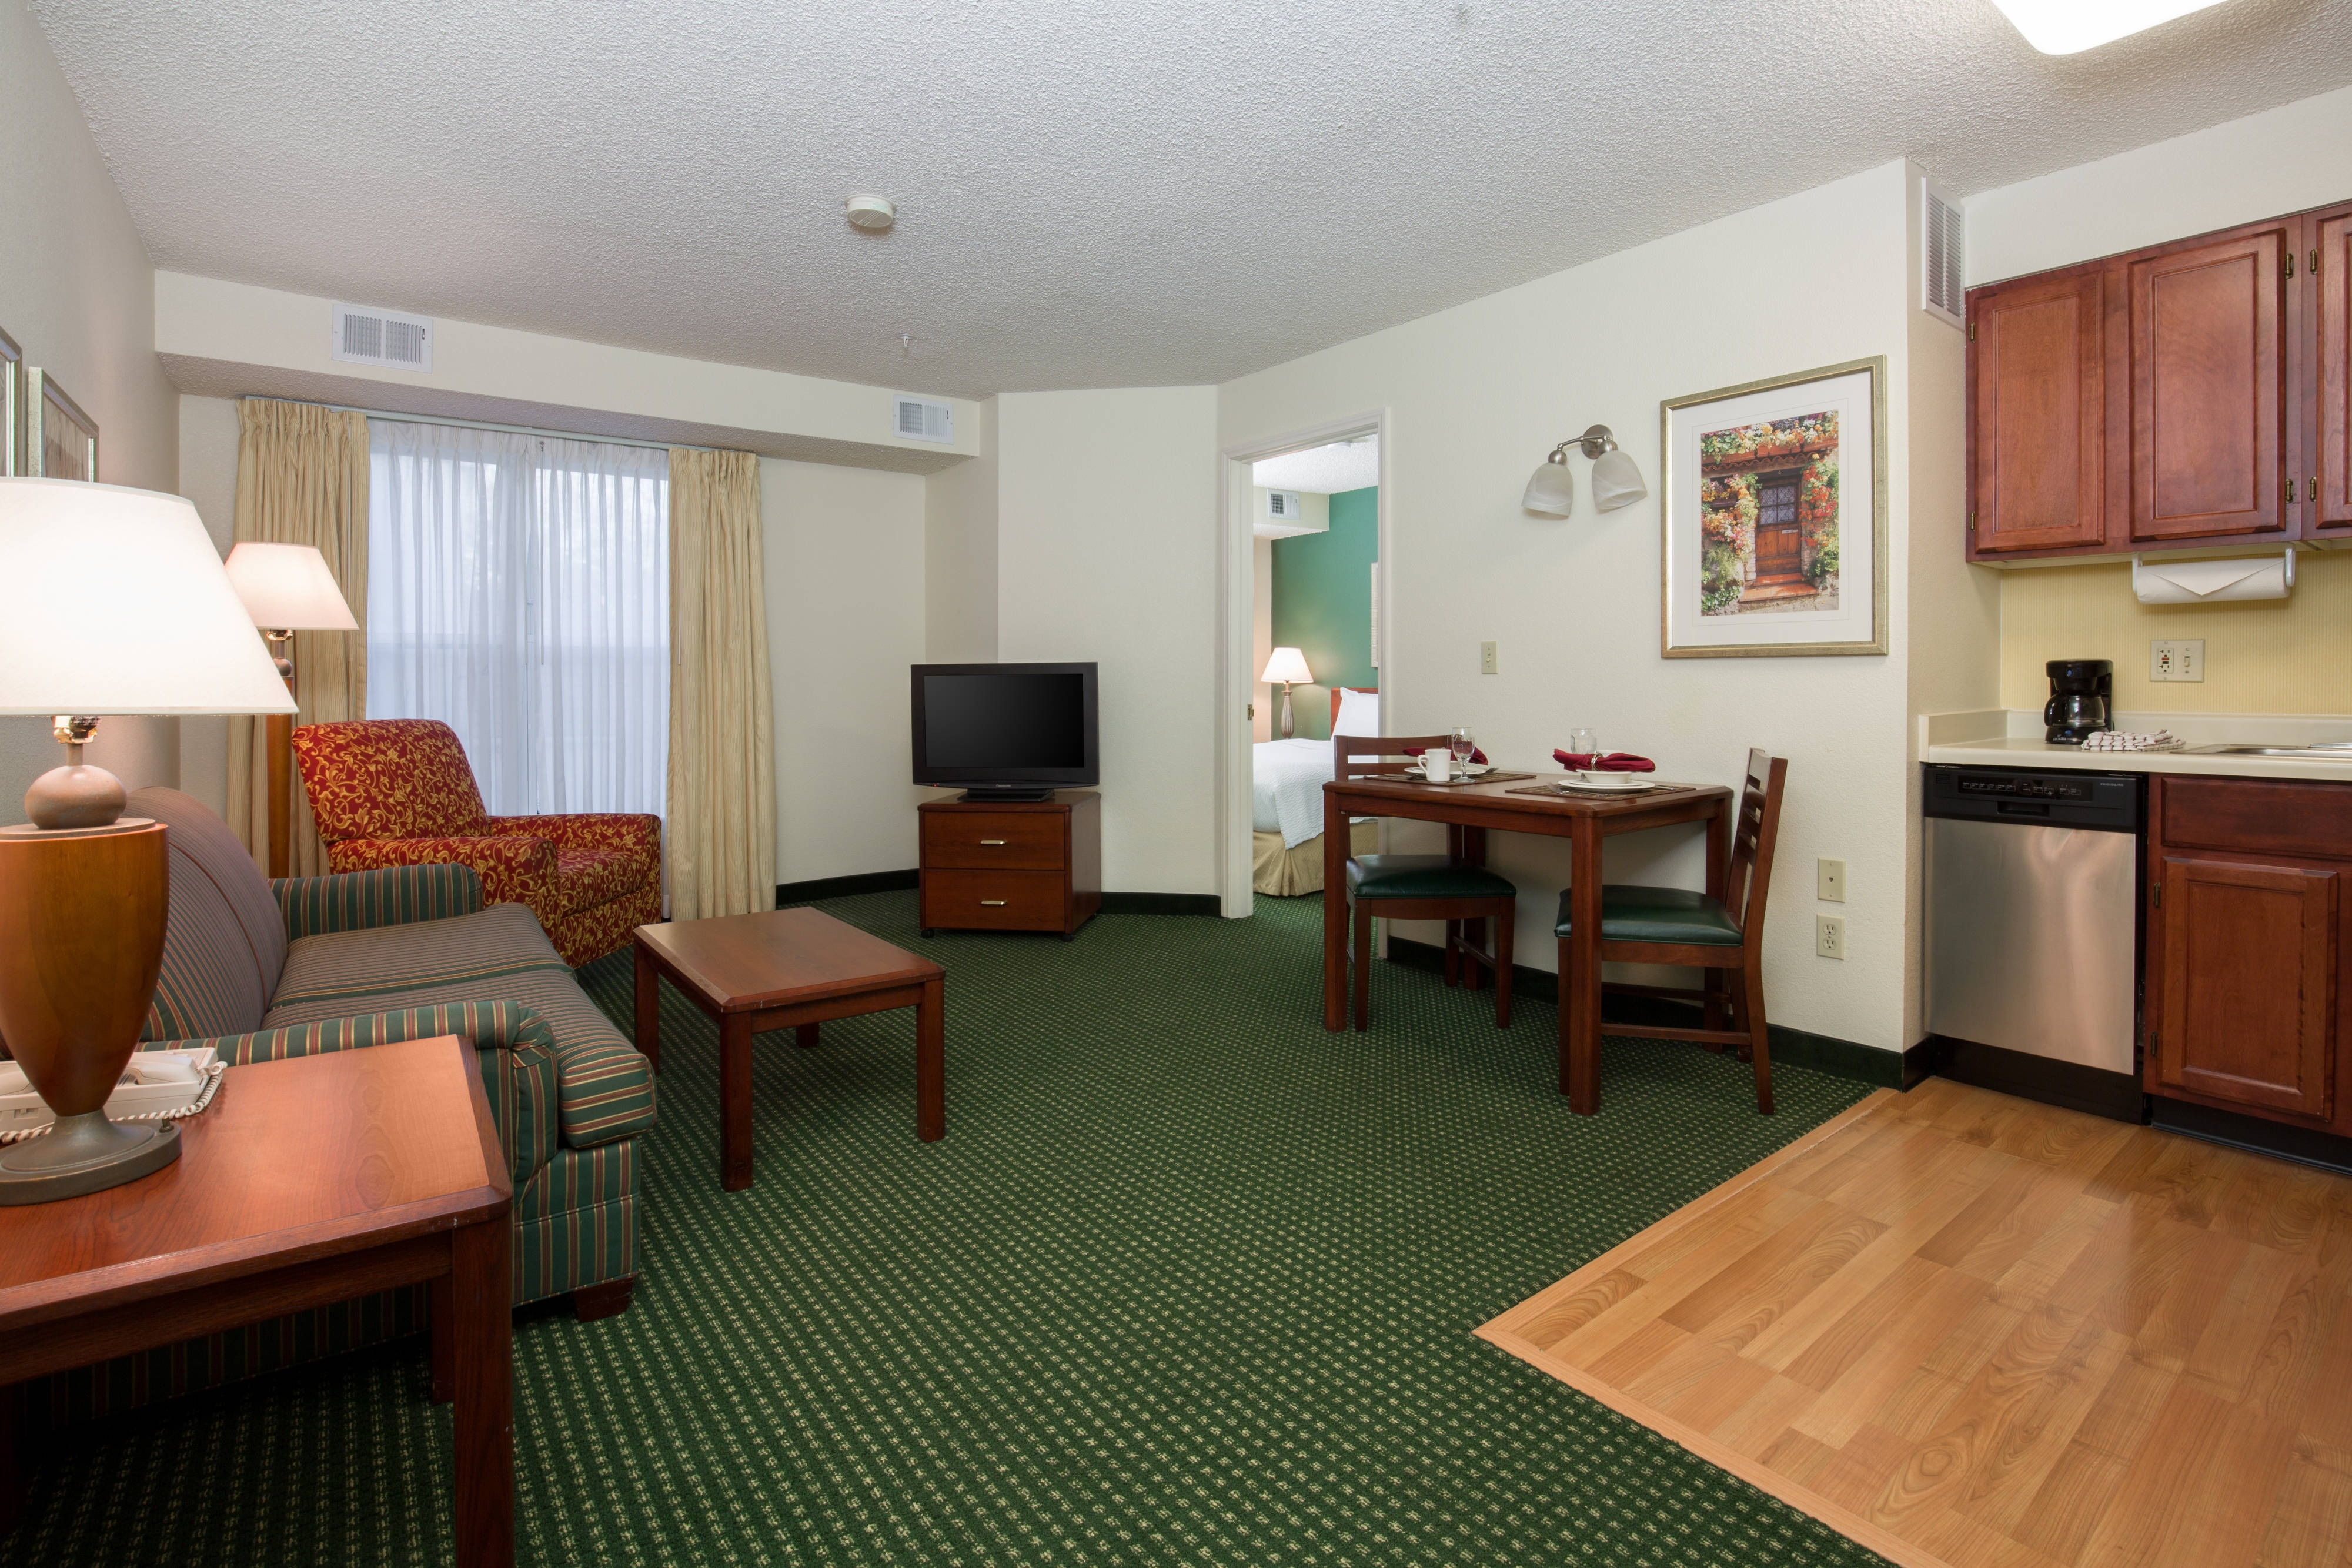 Roseville California Hotel One Bedroom